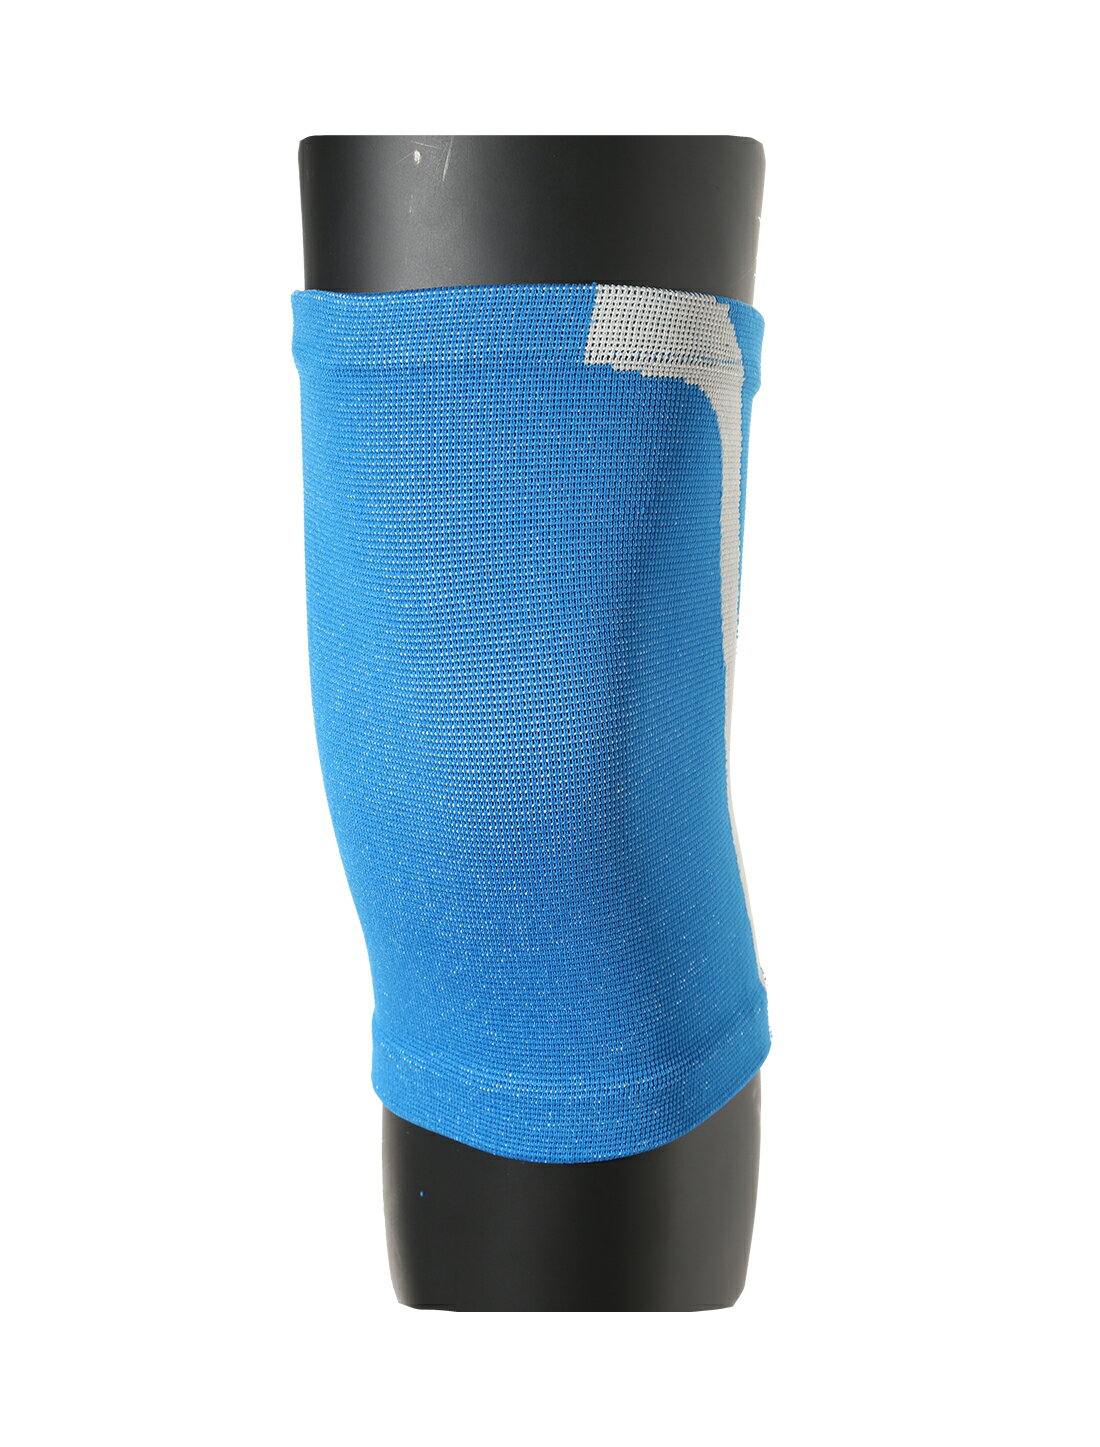 1bde756f2a340 Unique Bargains Unisex Breathable Compression Sleeve Support Stretchy Knee  Brace Blue (Size S) 0